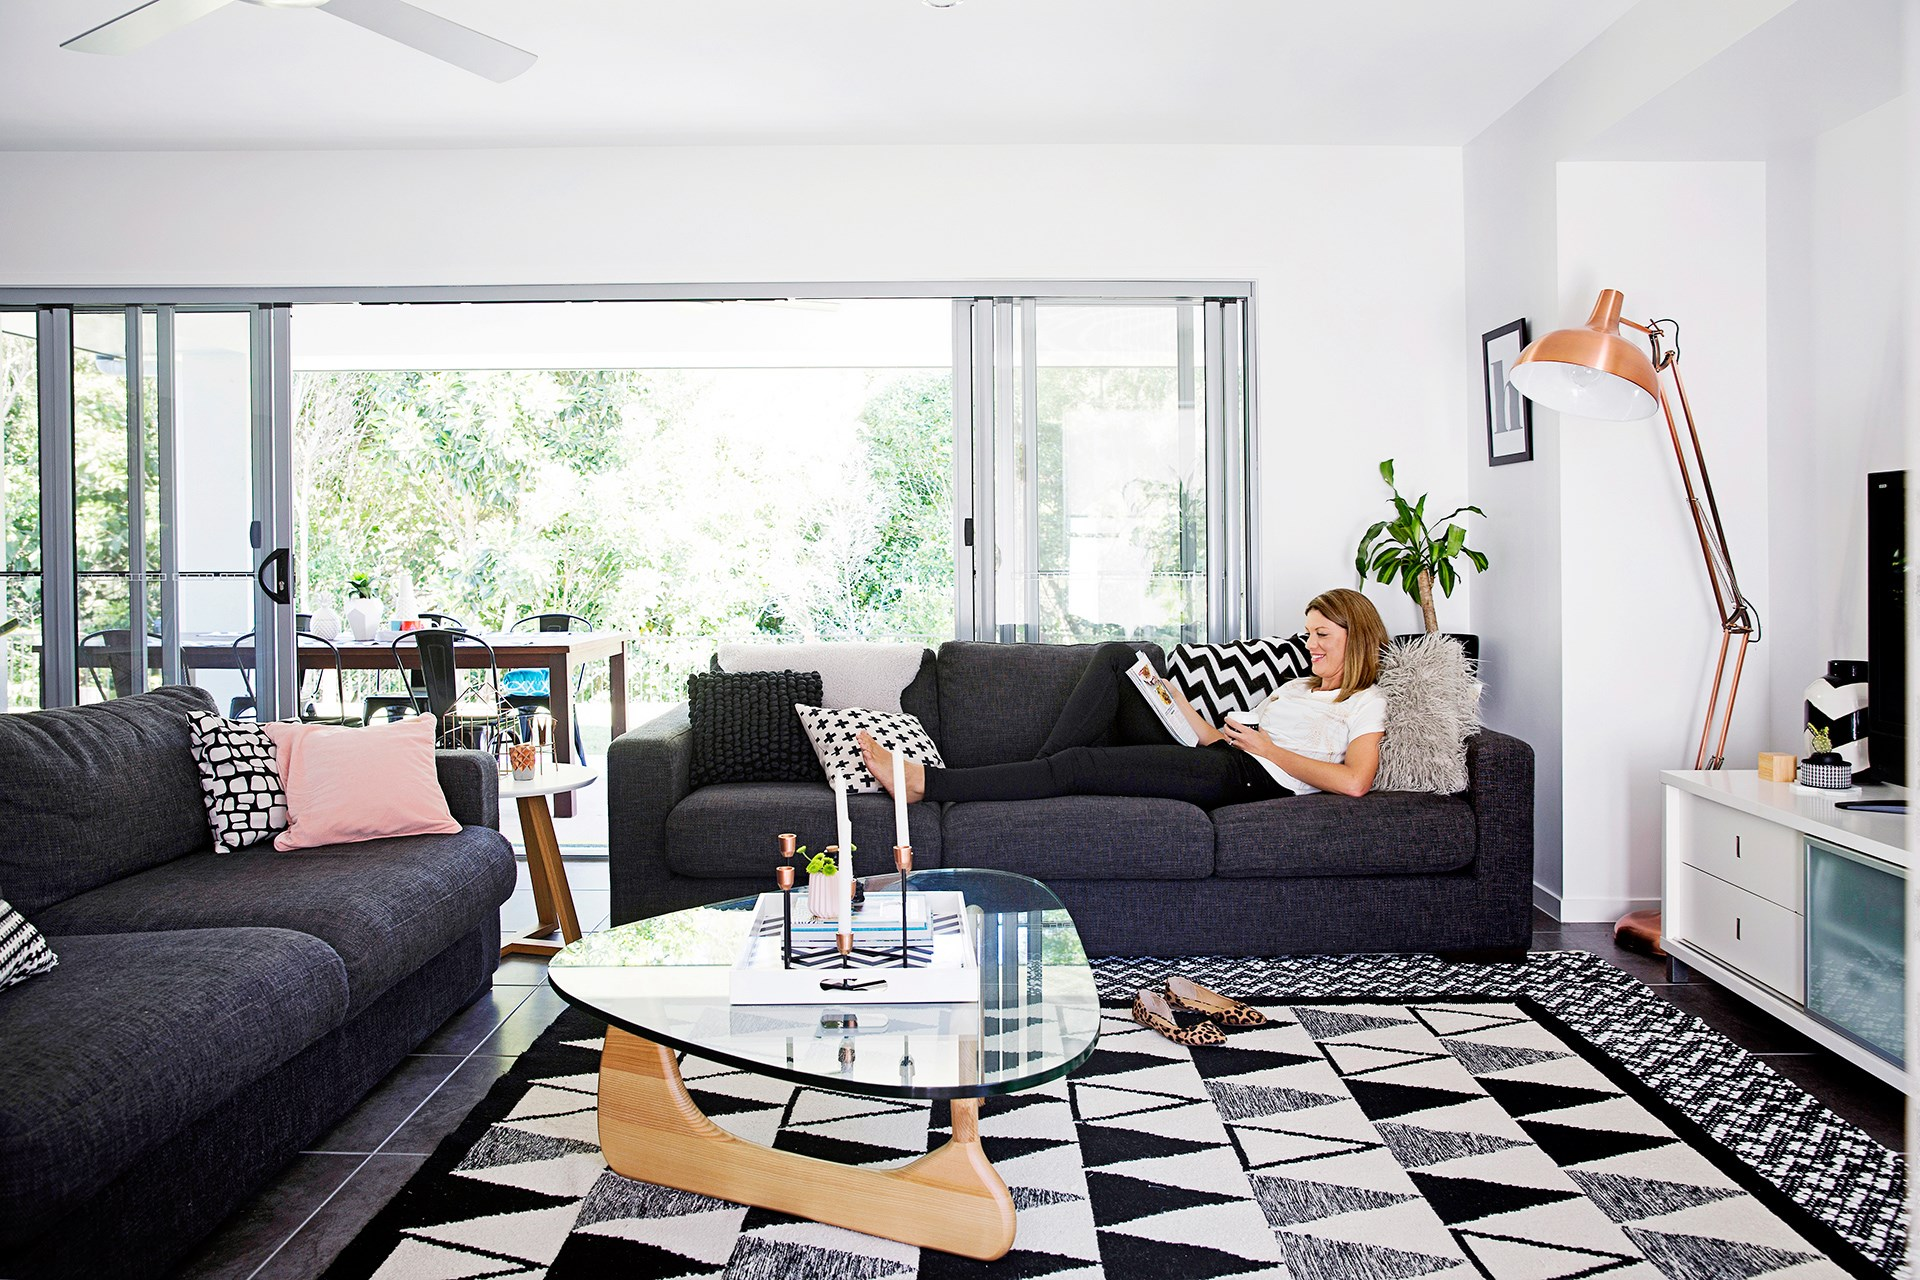 **Julie Holland** When Julie Holland and her carpenter husband Jeremy embarked on building a new house in Noosa, it took twice as long as they expected, but the wait was worth it. [See the full home here](http://www.homestolove.com.au/diy-family-builds-their-ideal-home-2801) or [vote for this home](http://www.homestolove.com.au/homes-reader-home-of-the-year-4499).